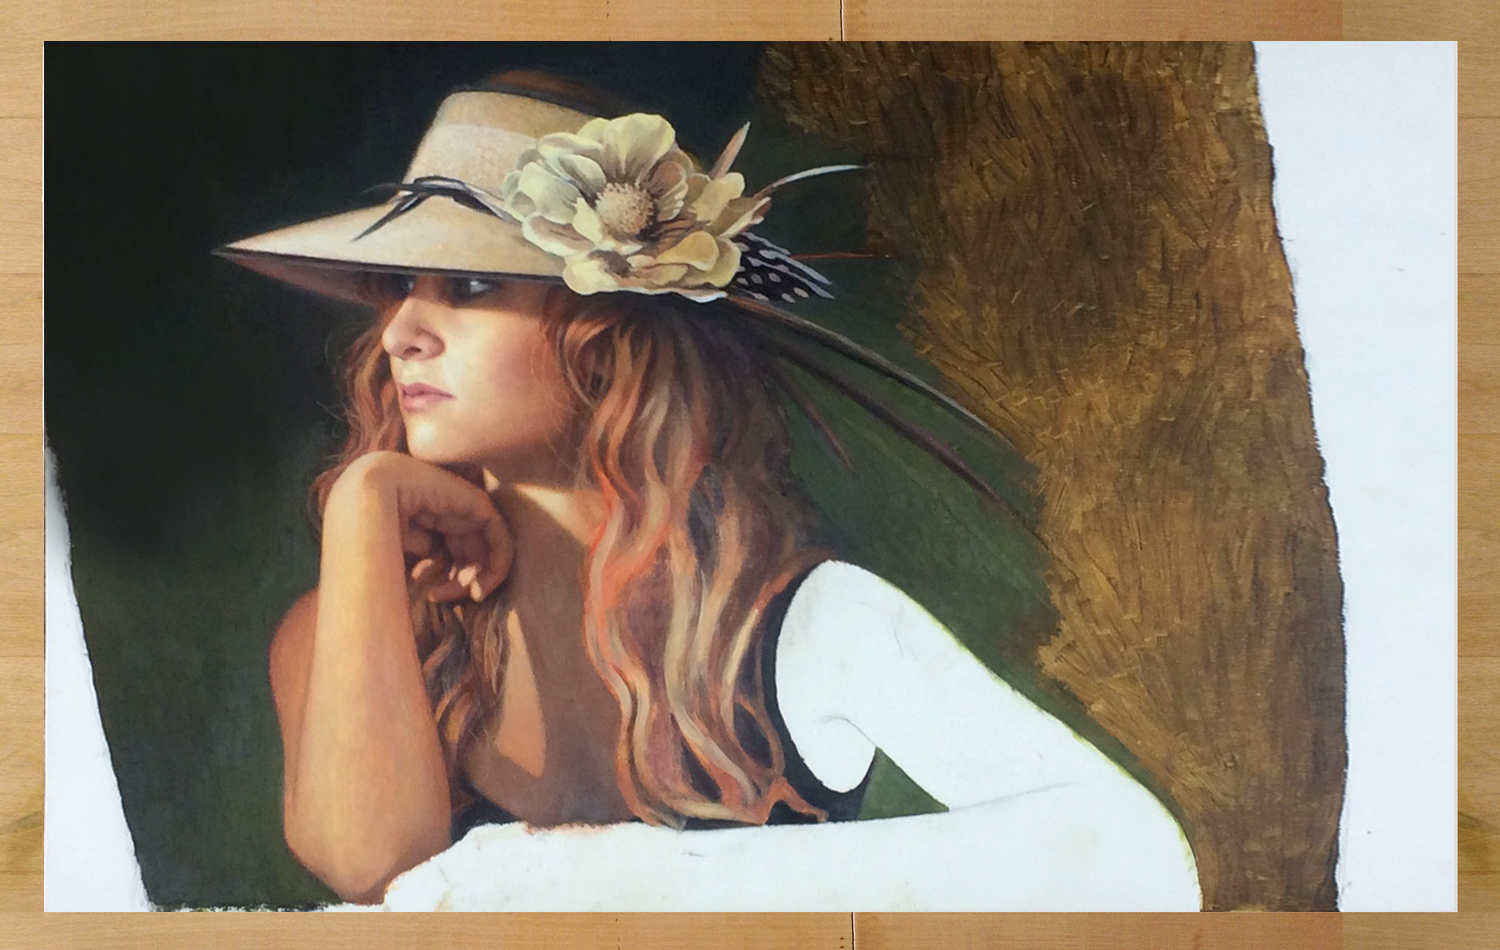 - Latest progress on painting as of May 7, 2014. Her face is almost finished and I am now working on her hat, flower and hair. The white areas on each edge will become lace window curtains.